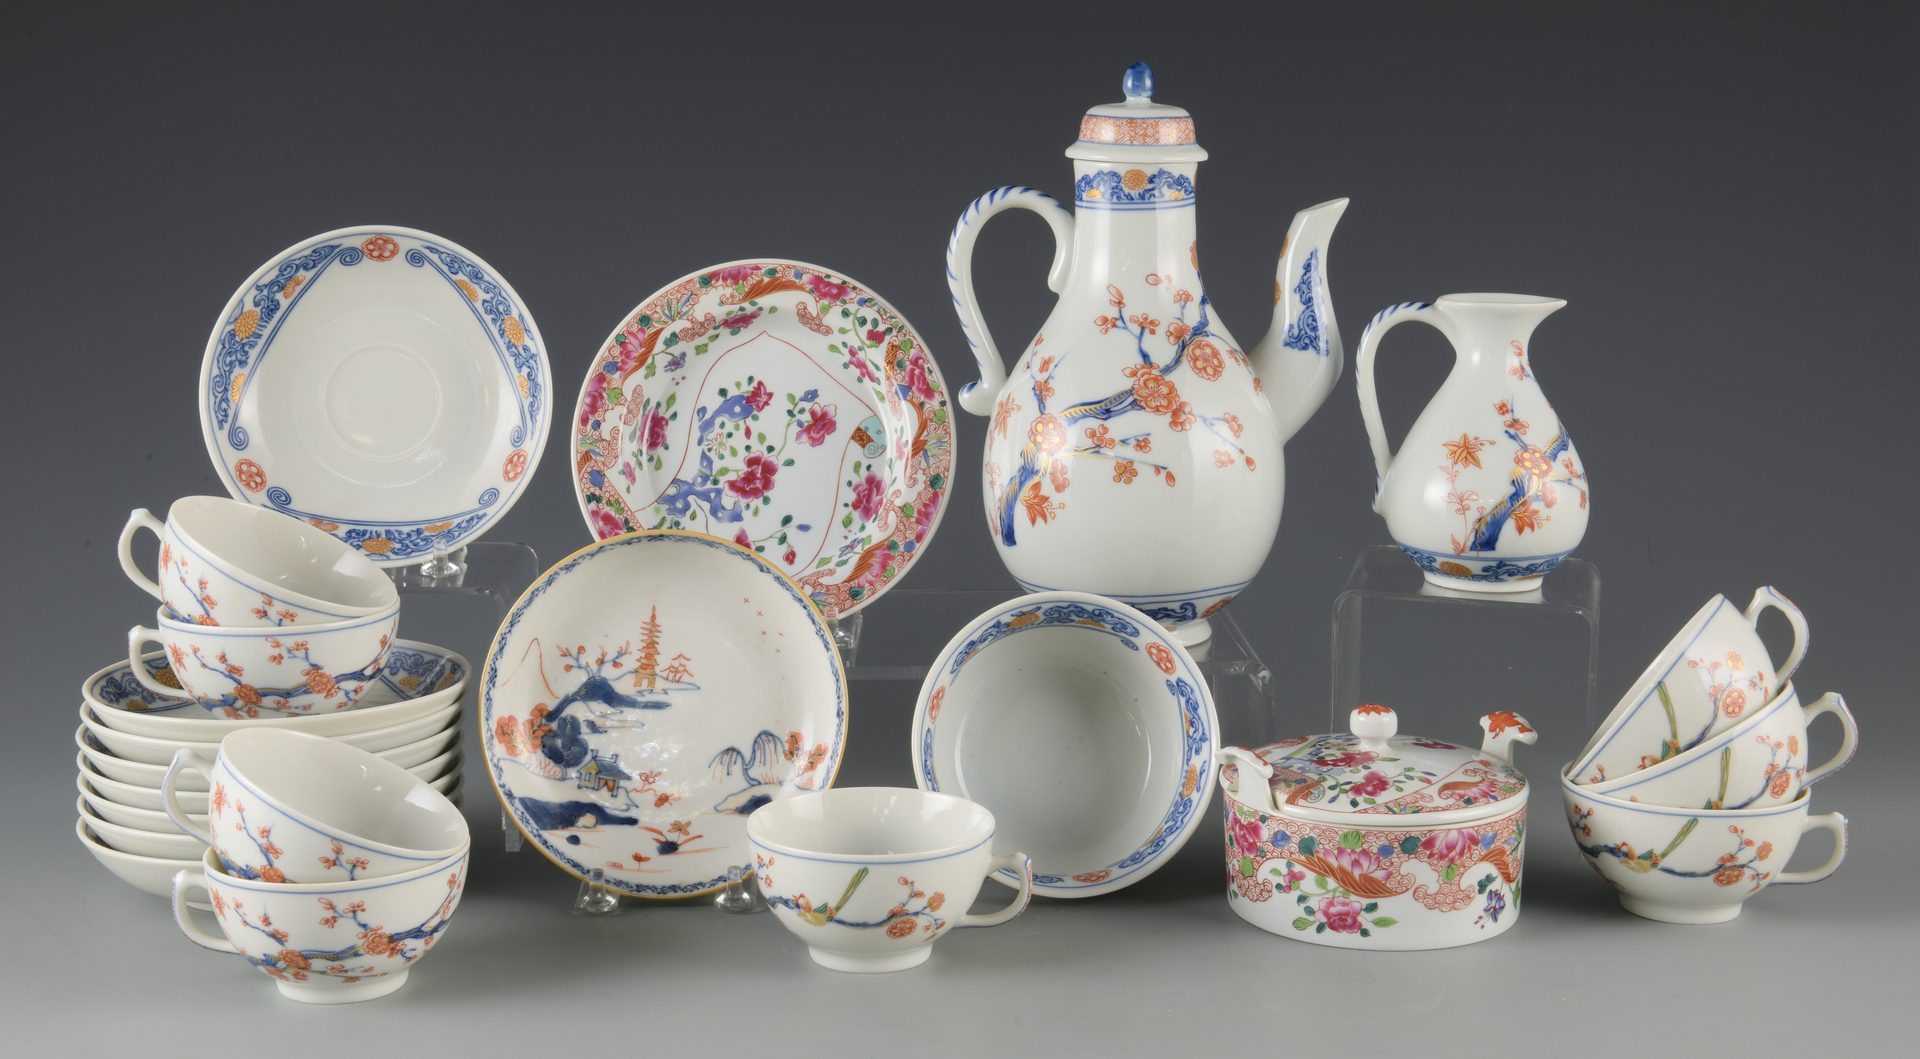 Lot 621: Mottahedeh Tea Set & More, 22 pcs